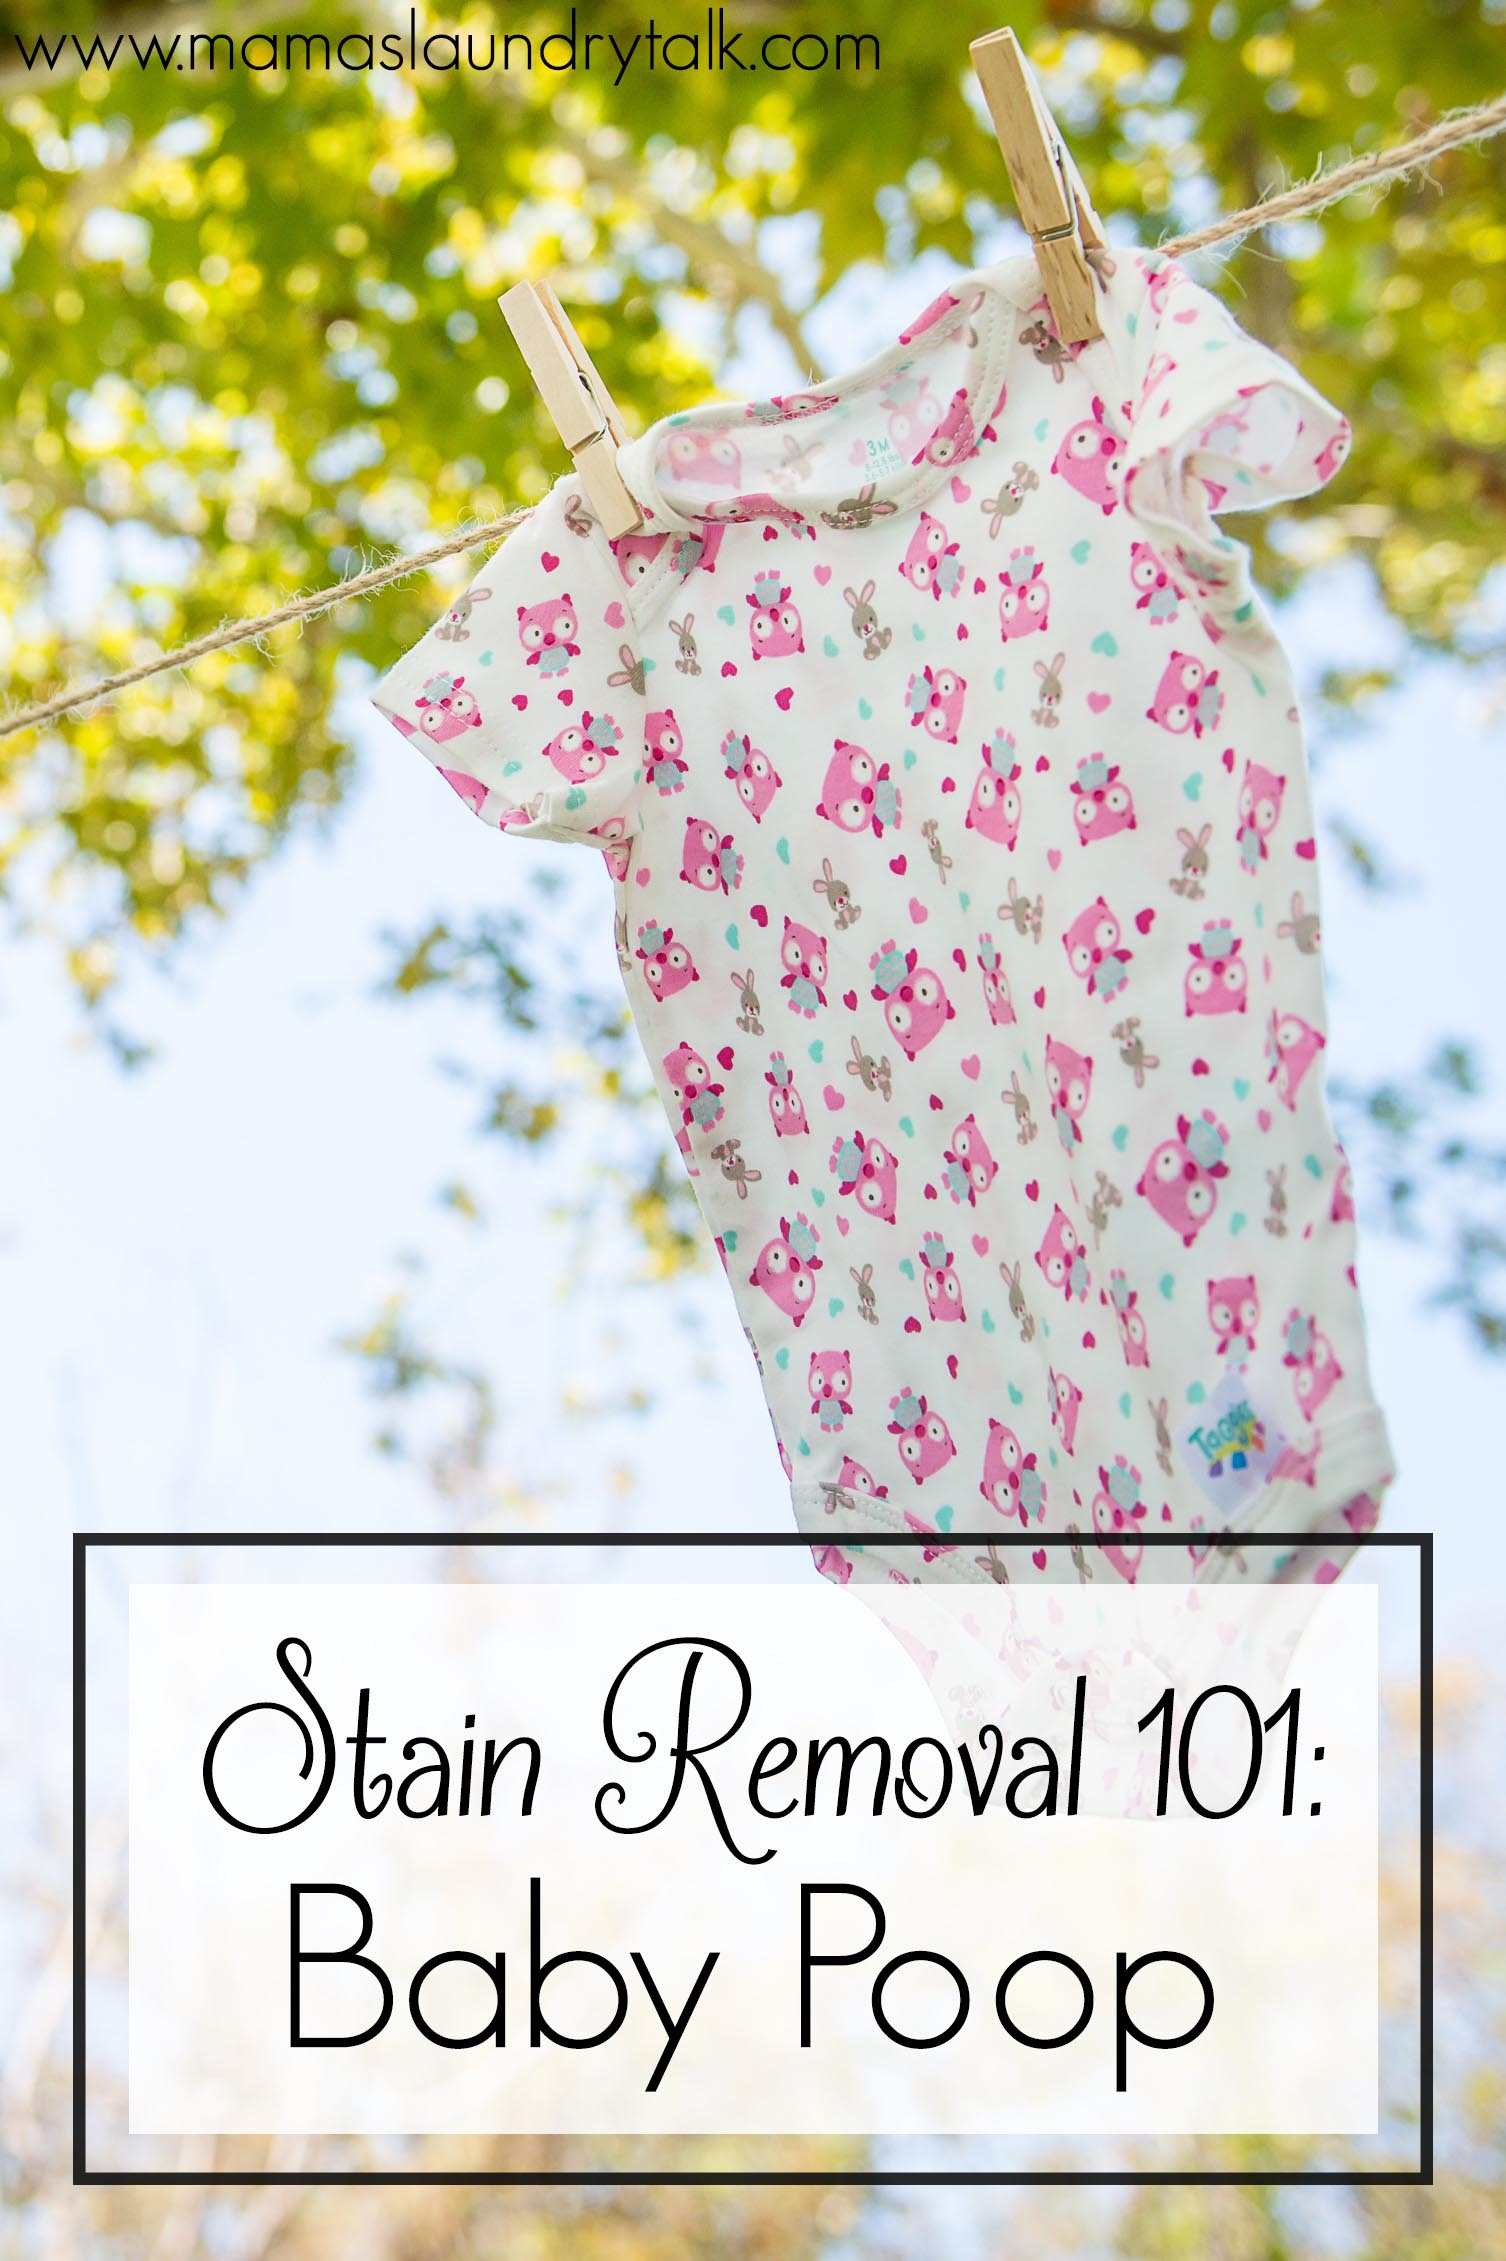 Stain Removal 101 Baby Poop Mama s Laundry Talk